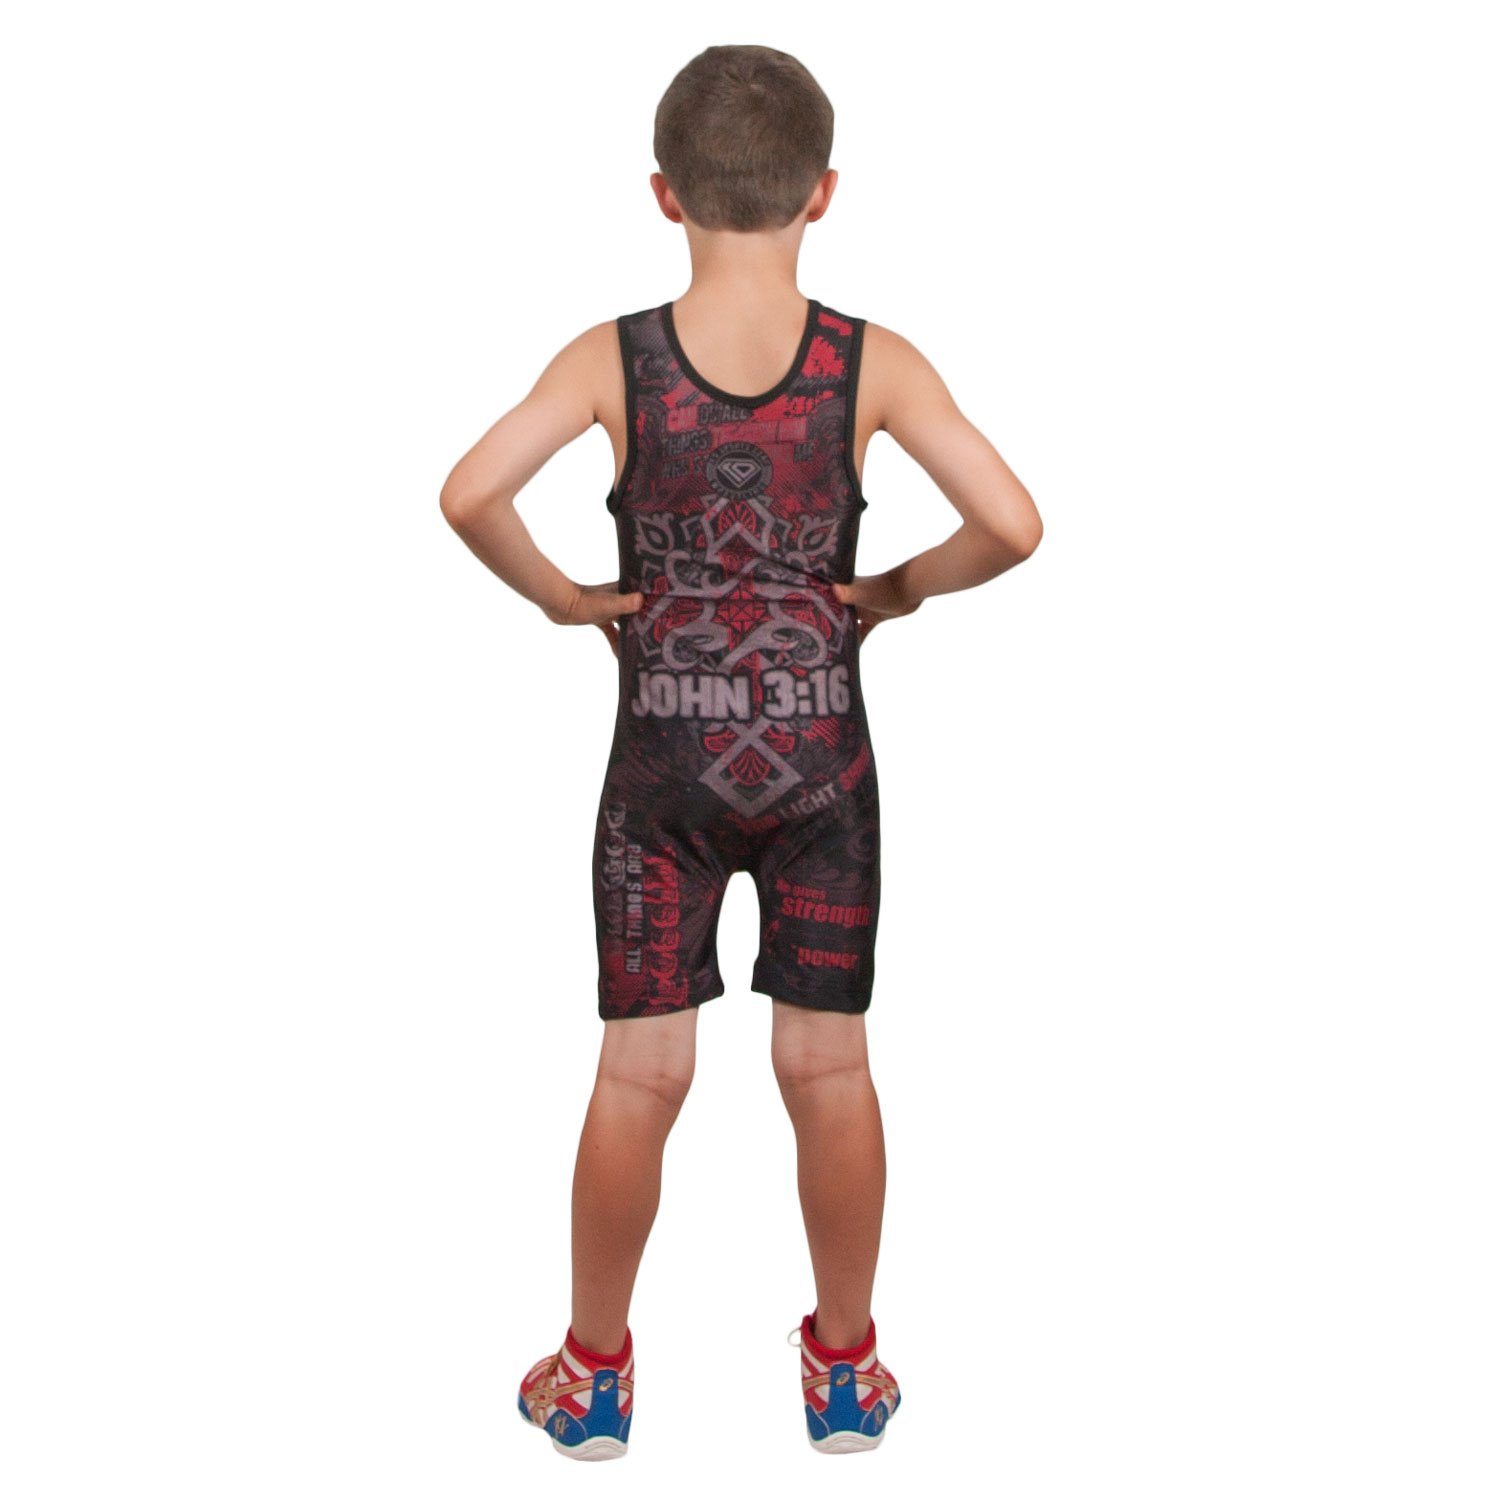 KO Sports Gear Wrestling Singlet by Religious Lion - Fun, Affordable, Head Turning (Adult M : 110-140 lbs) by KO Sports Gear